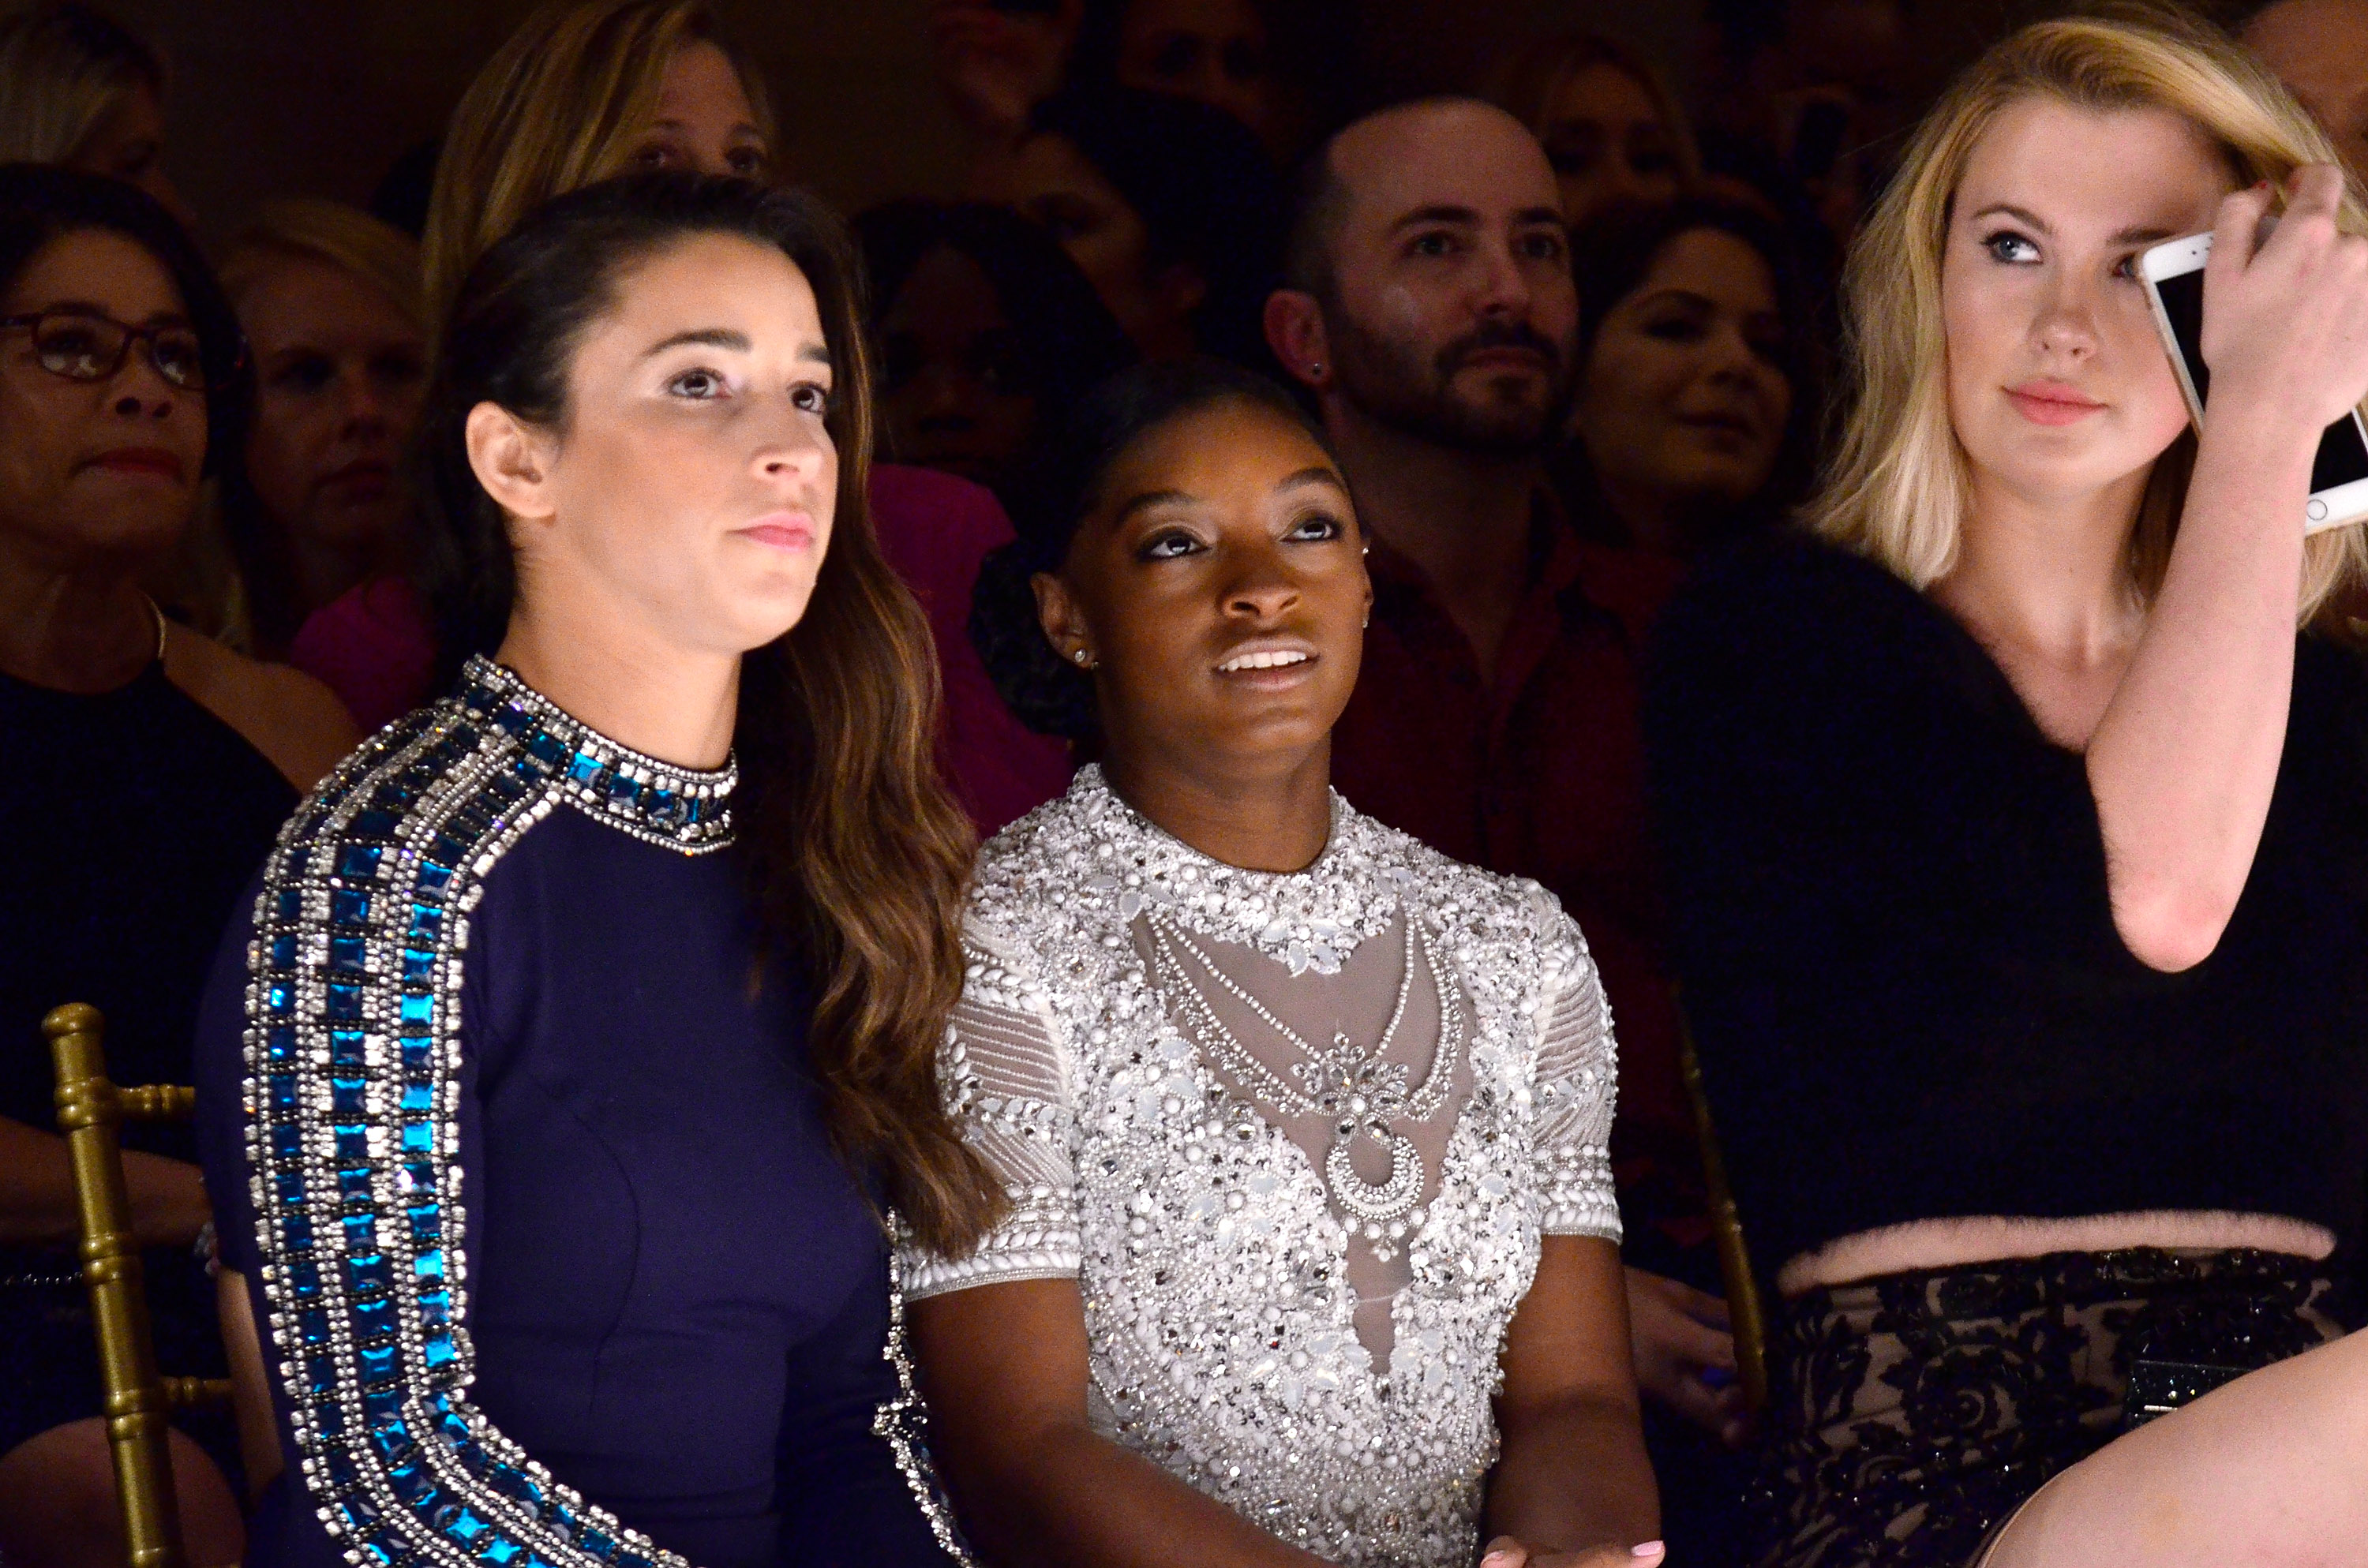 Simone Biles and Aly Raisman are having the best time at NFYW